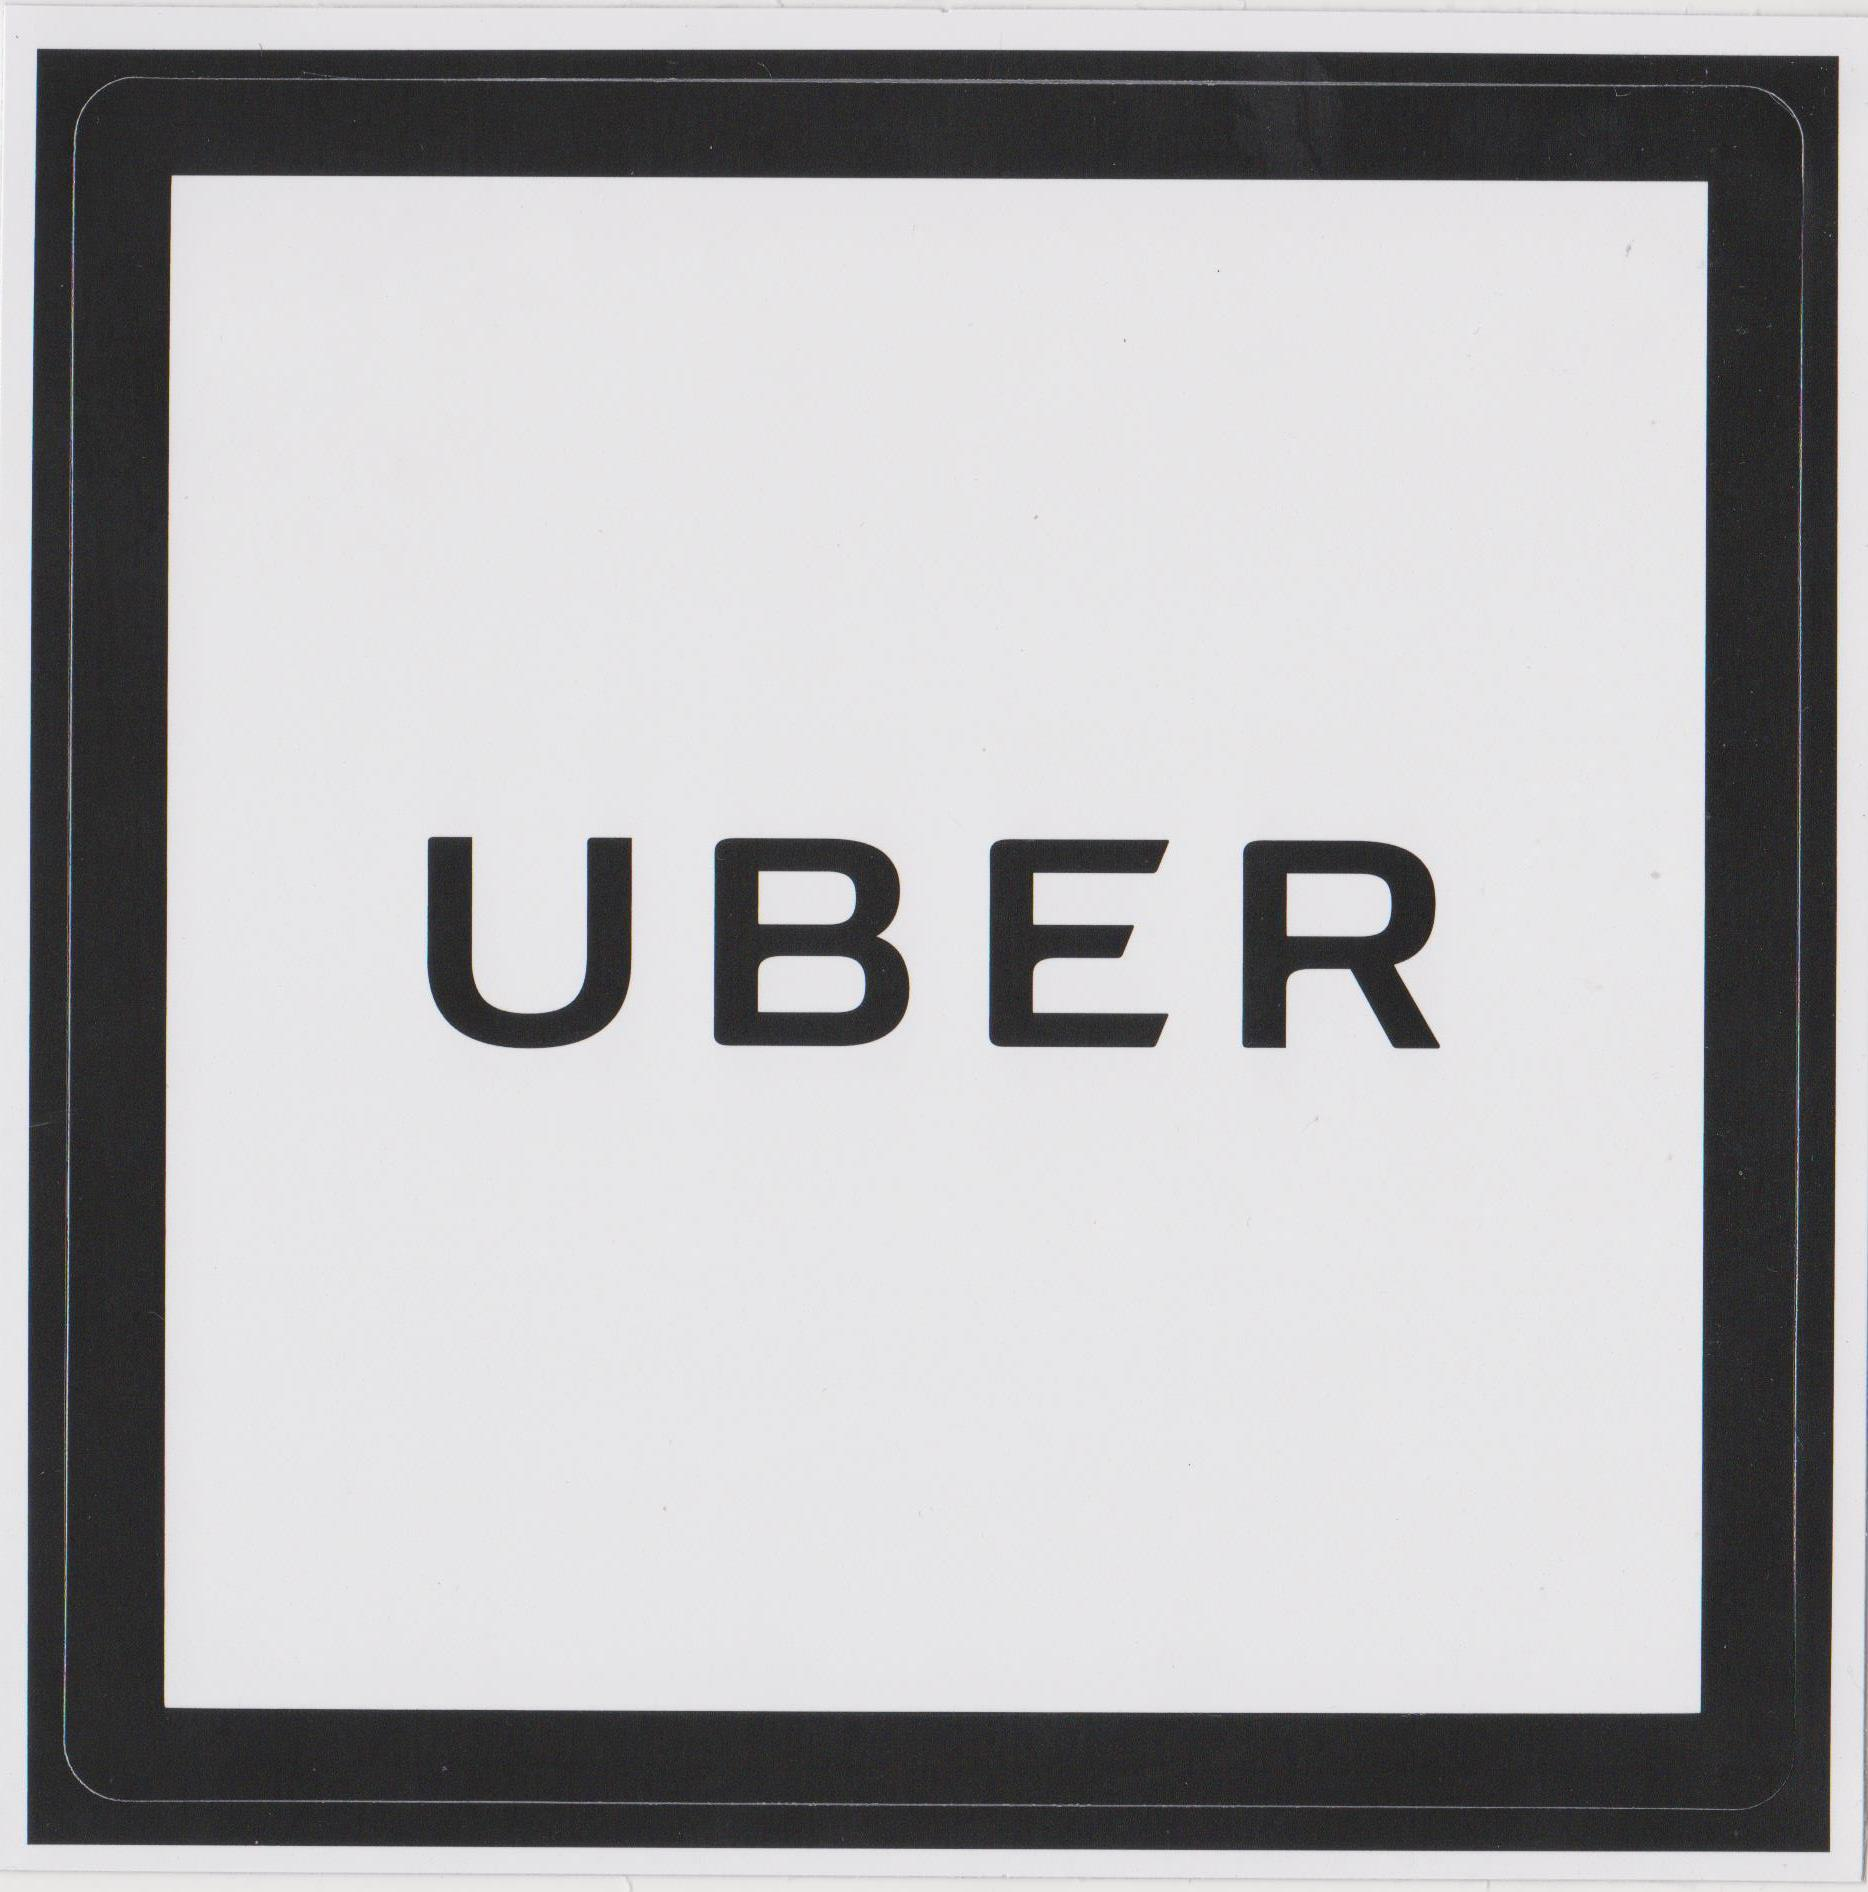 picture about Uber Printable Decal titled Uber Motorists in just Qld: Fresh Signage Wants - Rideshare Gentleman